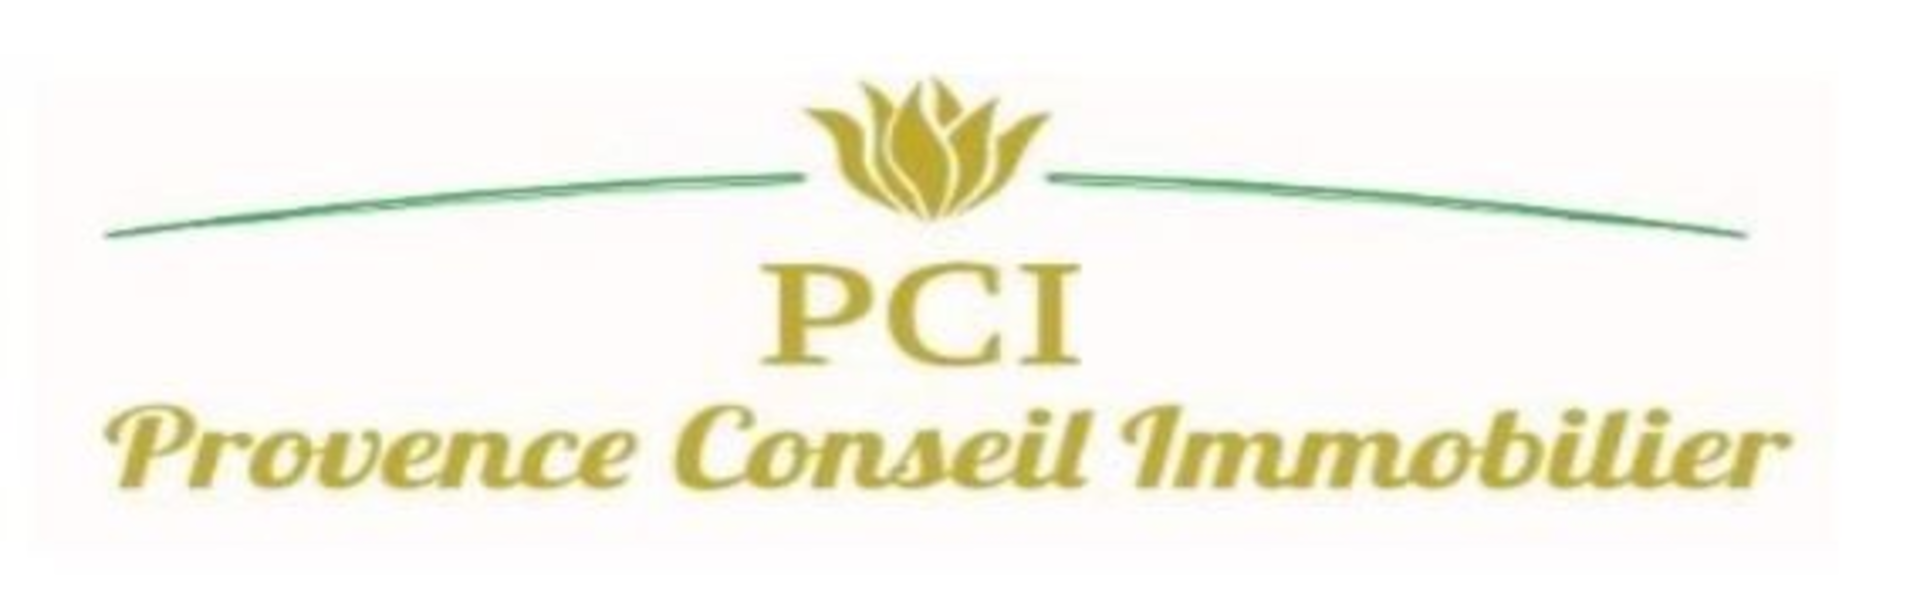 Provence Conseil Immobilier